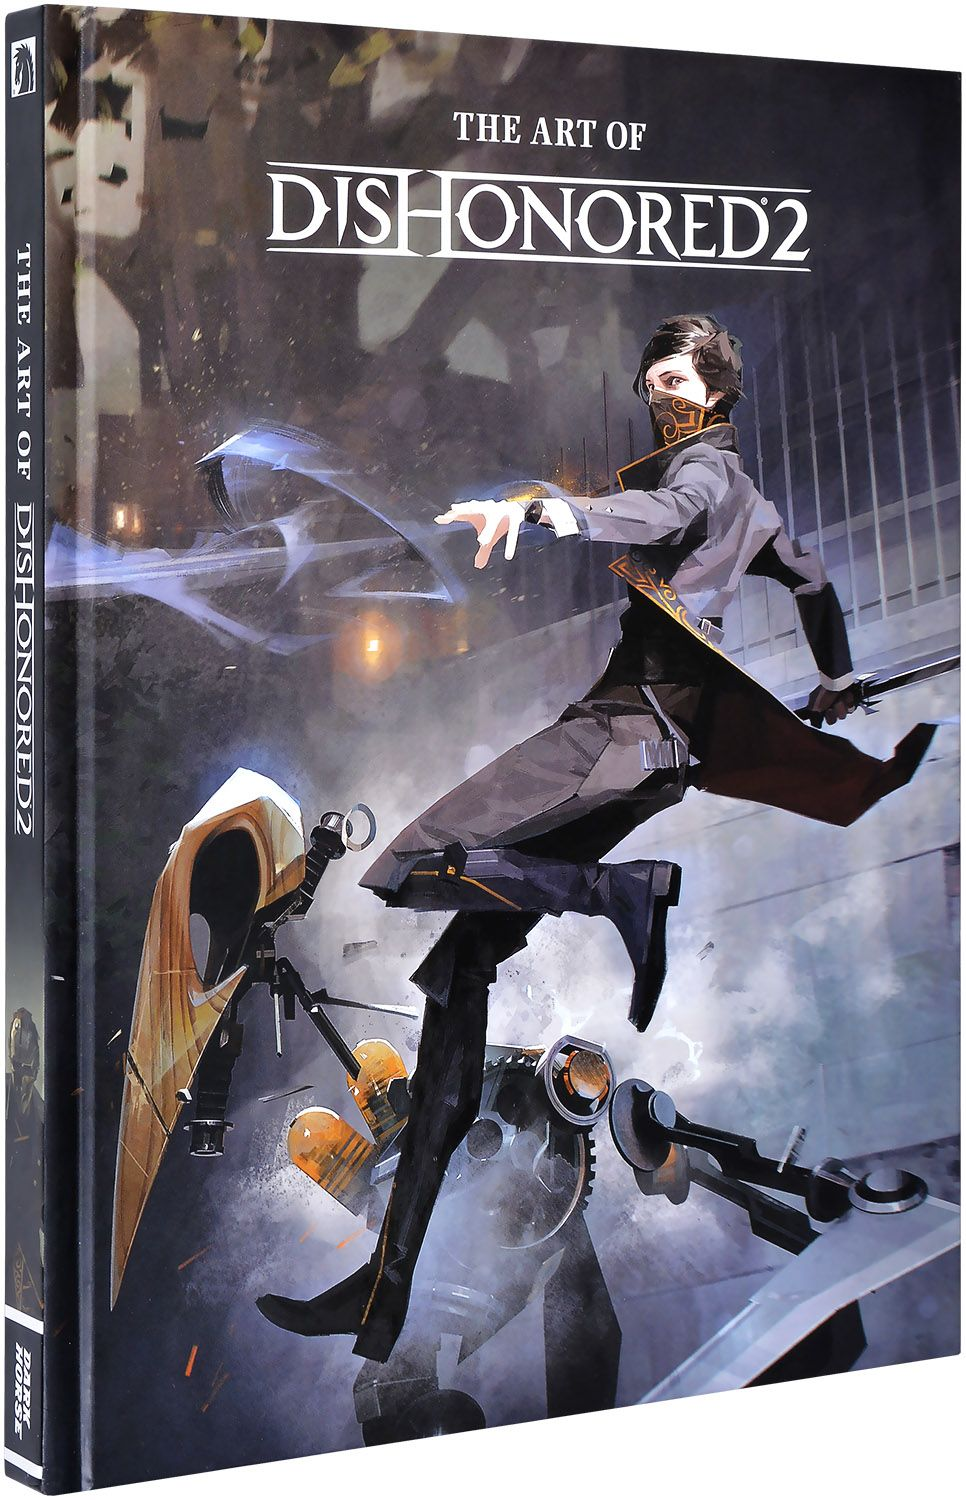 The Art of Dishonored 2 - 1